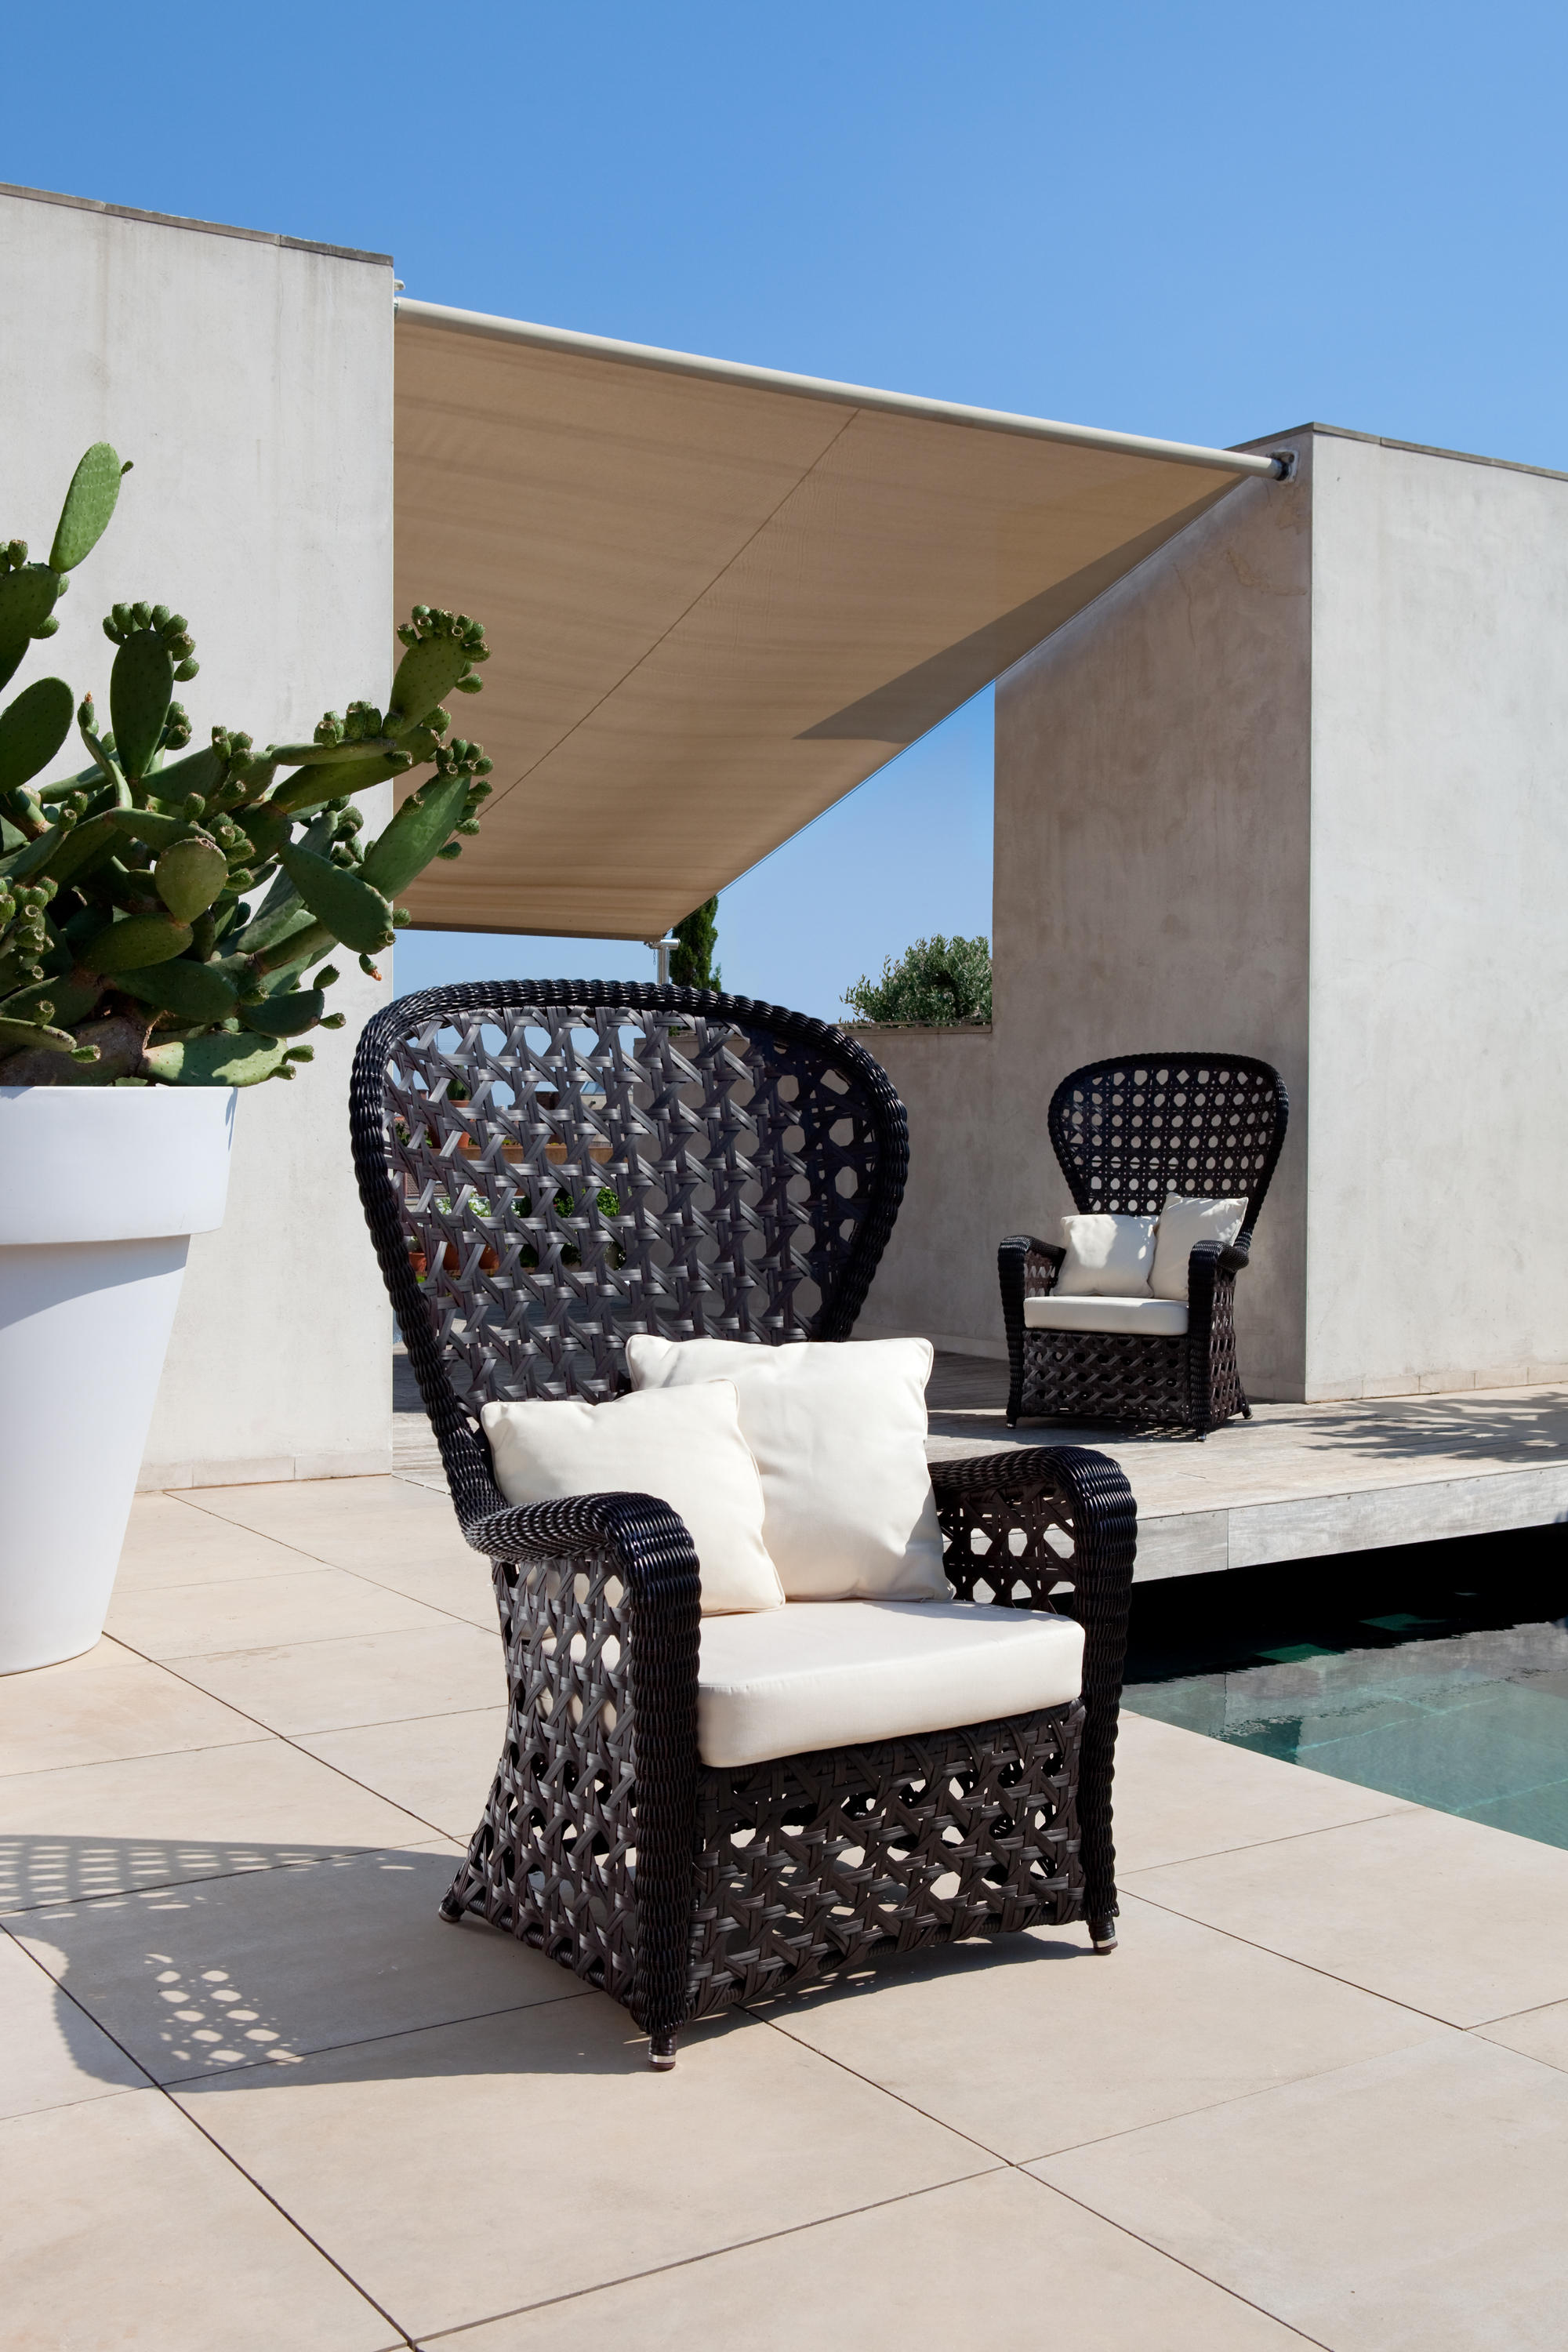 emmanuel armchair garden chairs from point architonic emmanuel armchair by point